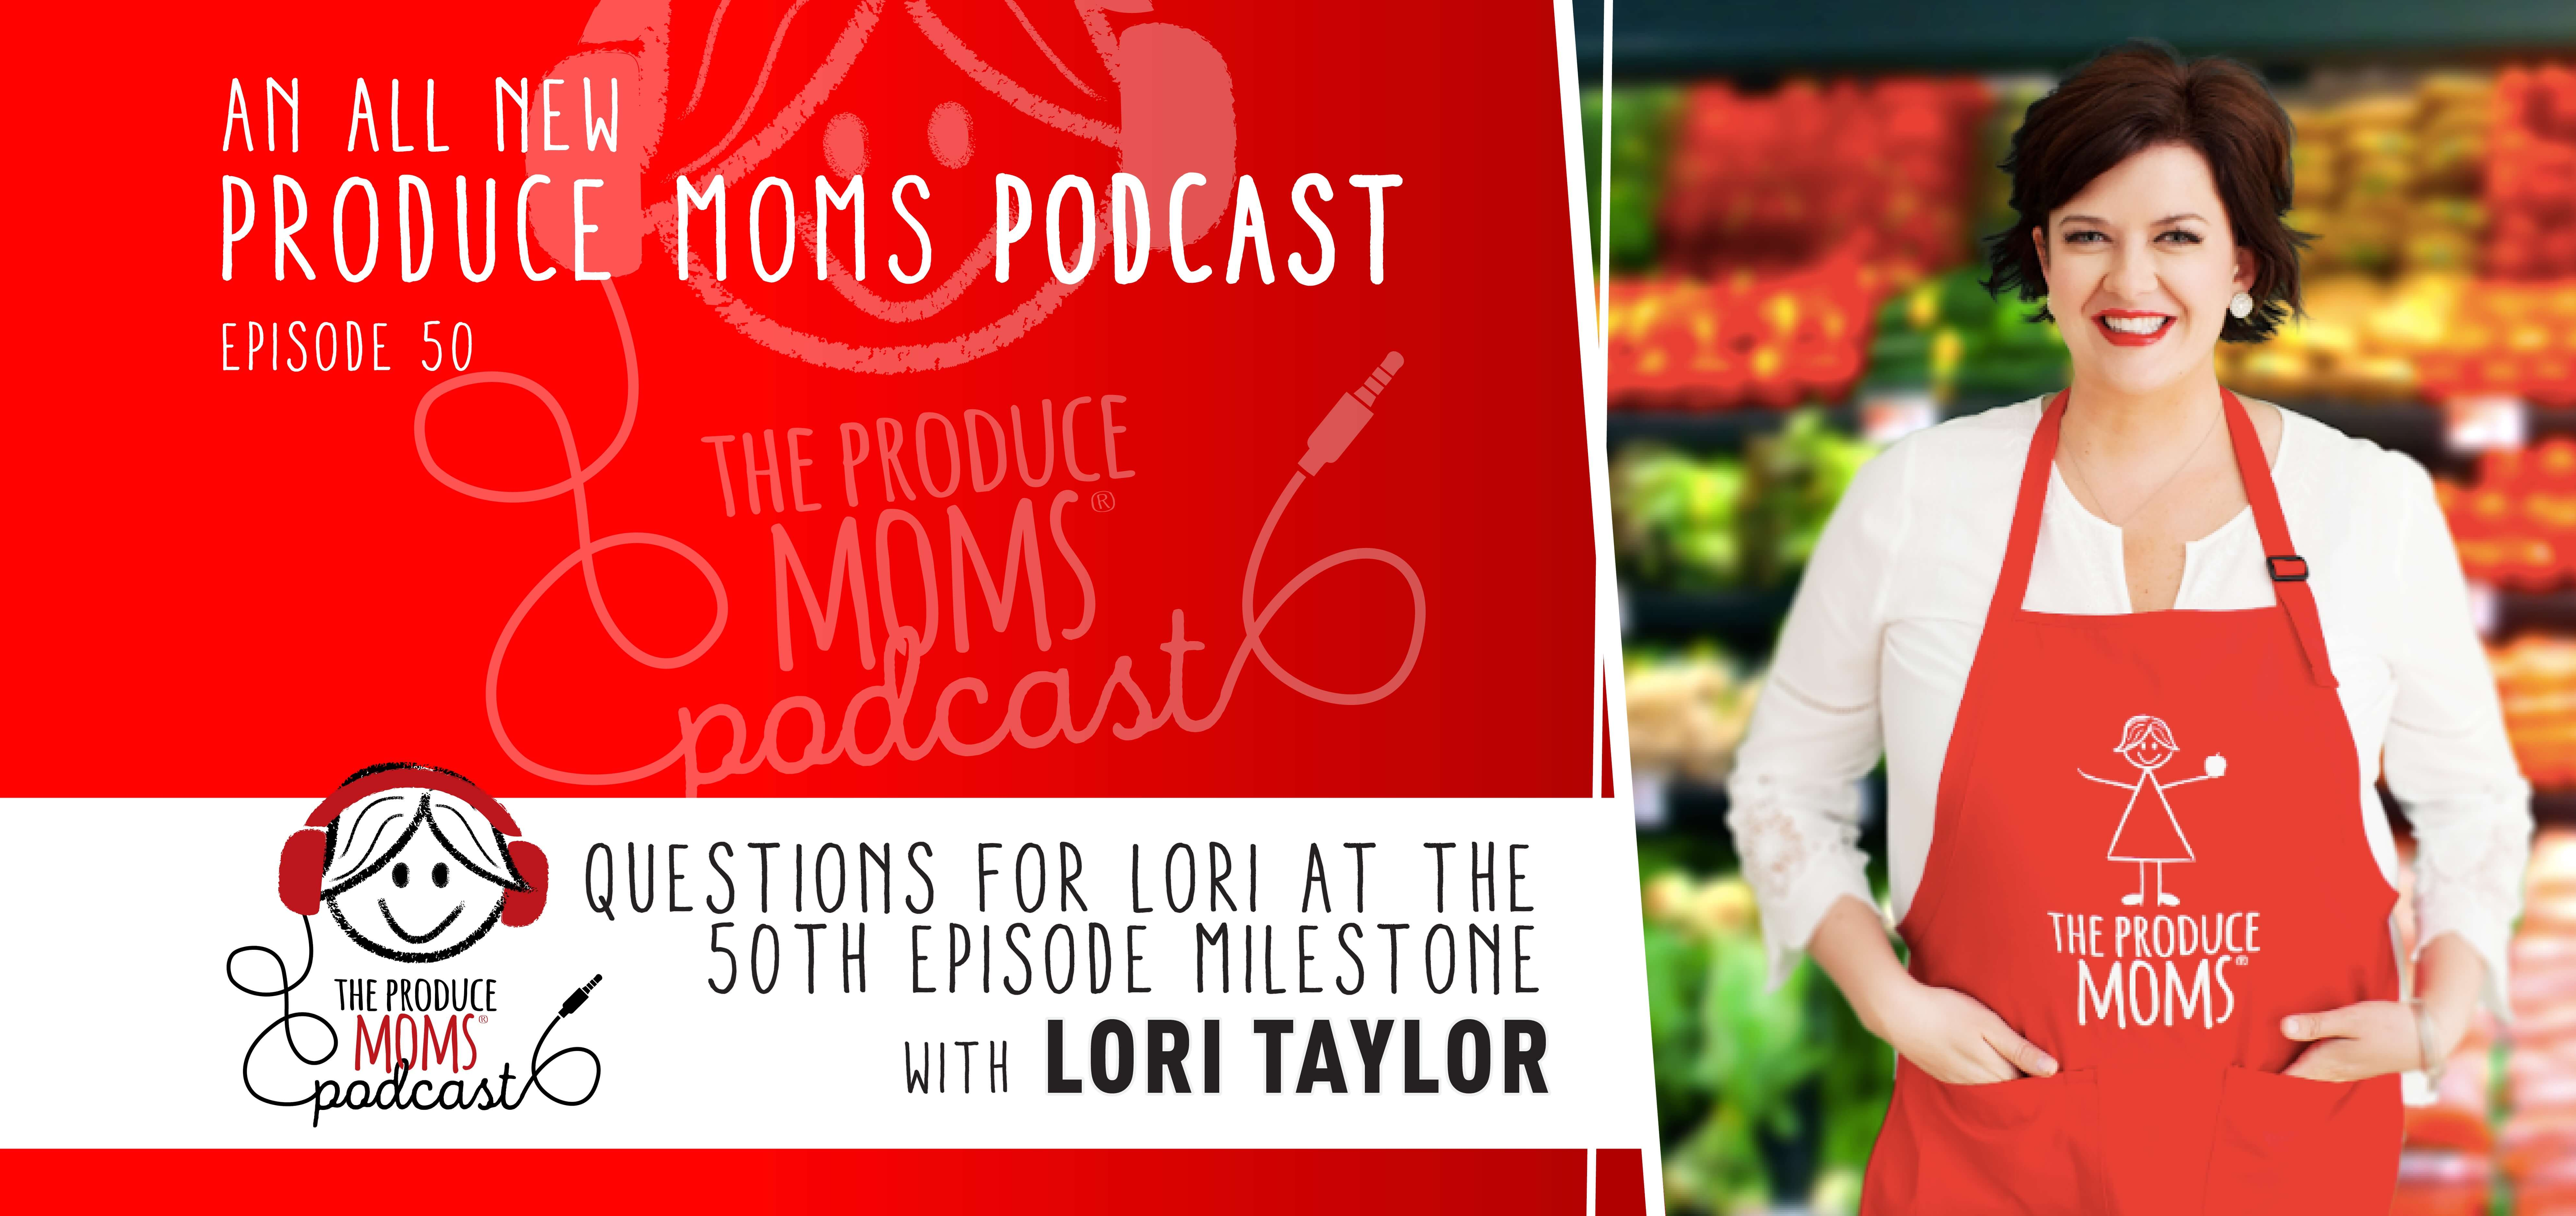 Episode 50: Questions for Lori at the 50th Episode Milestone